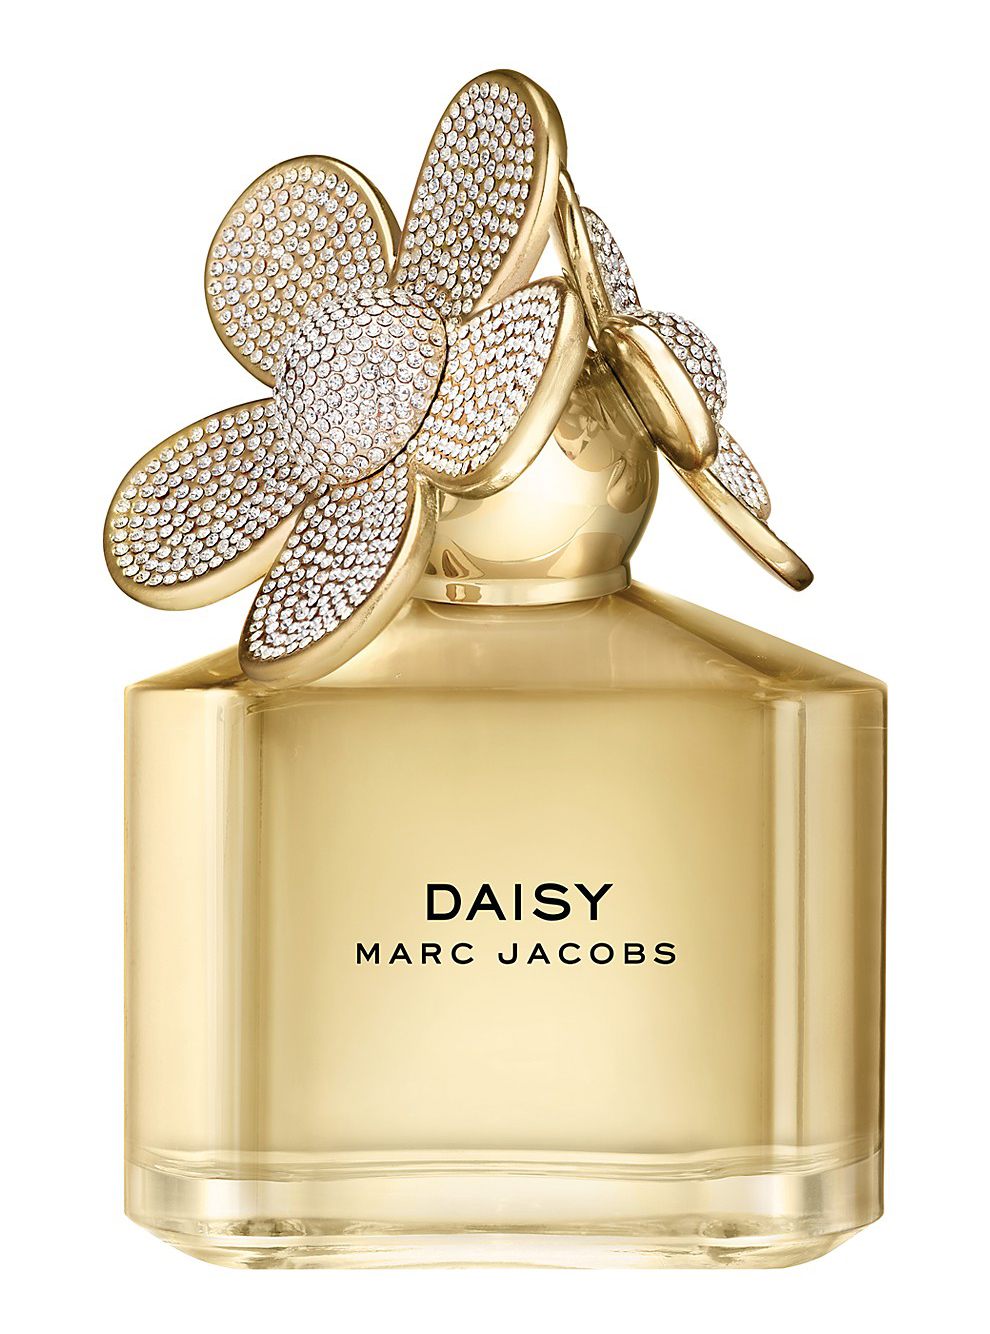 Daisy 10th anniversary luxury edition marc jacobs perfume a new daisy 10th anniversary luxury edition marc jacobs for women pictures izmirmasajfo